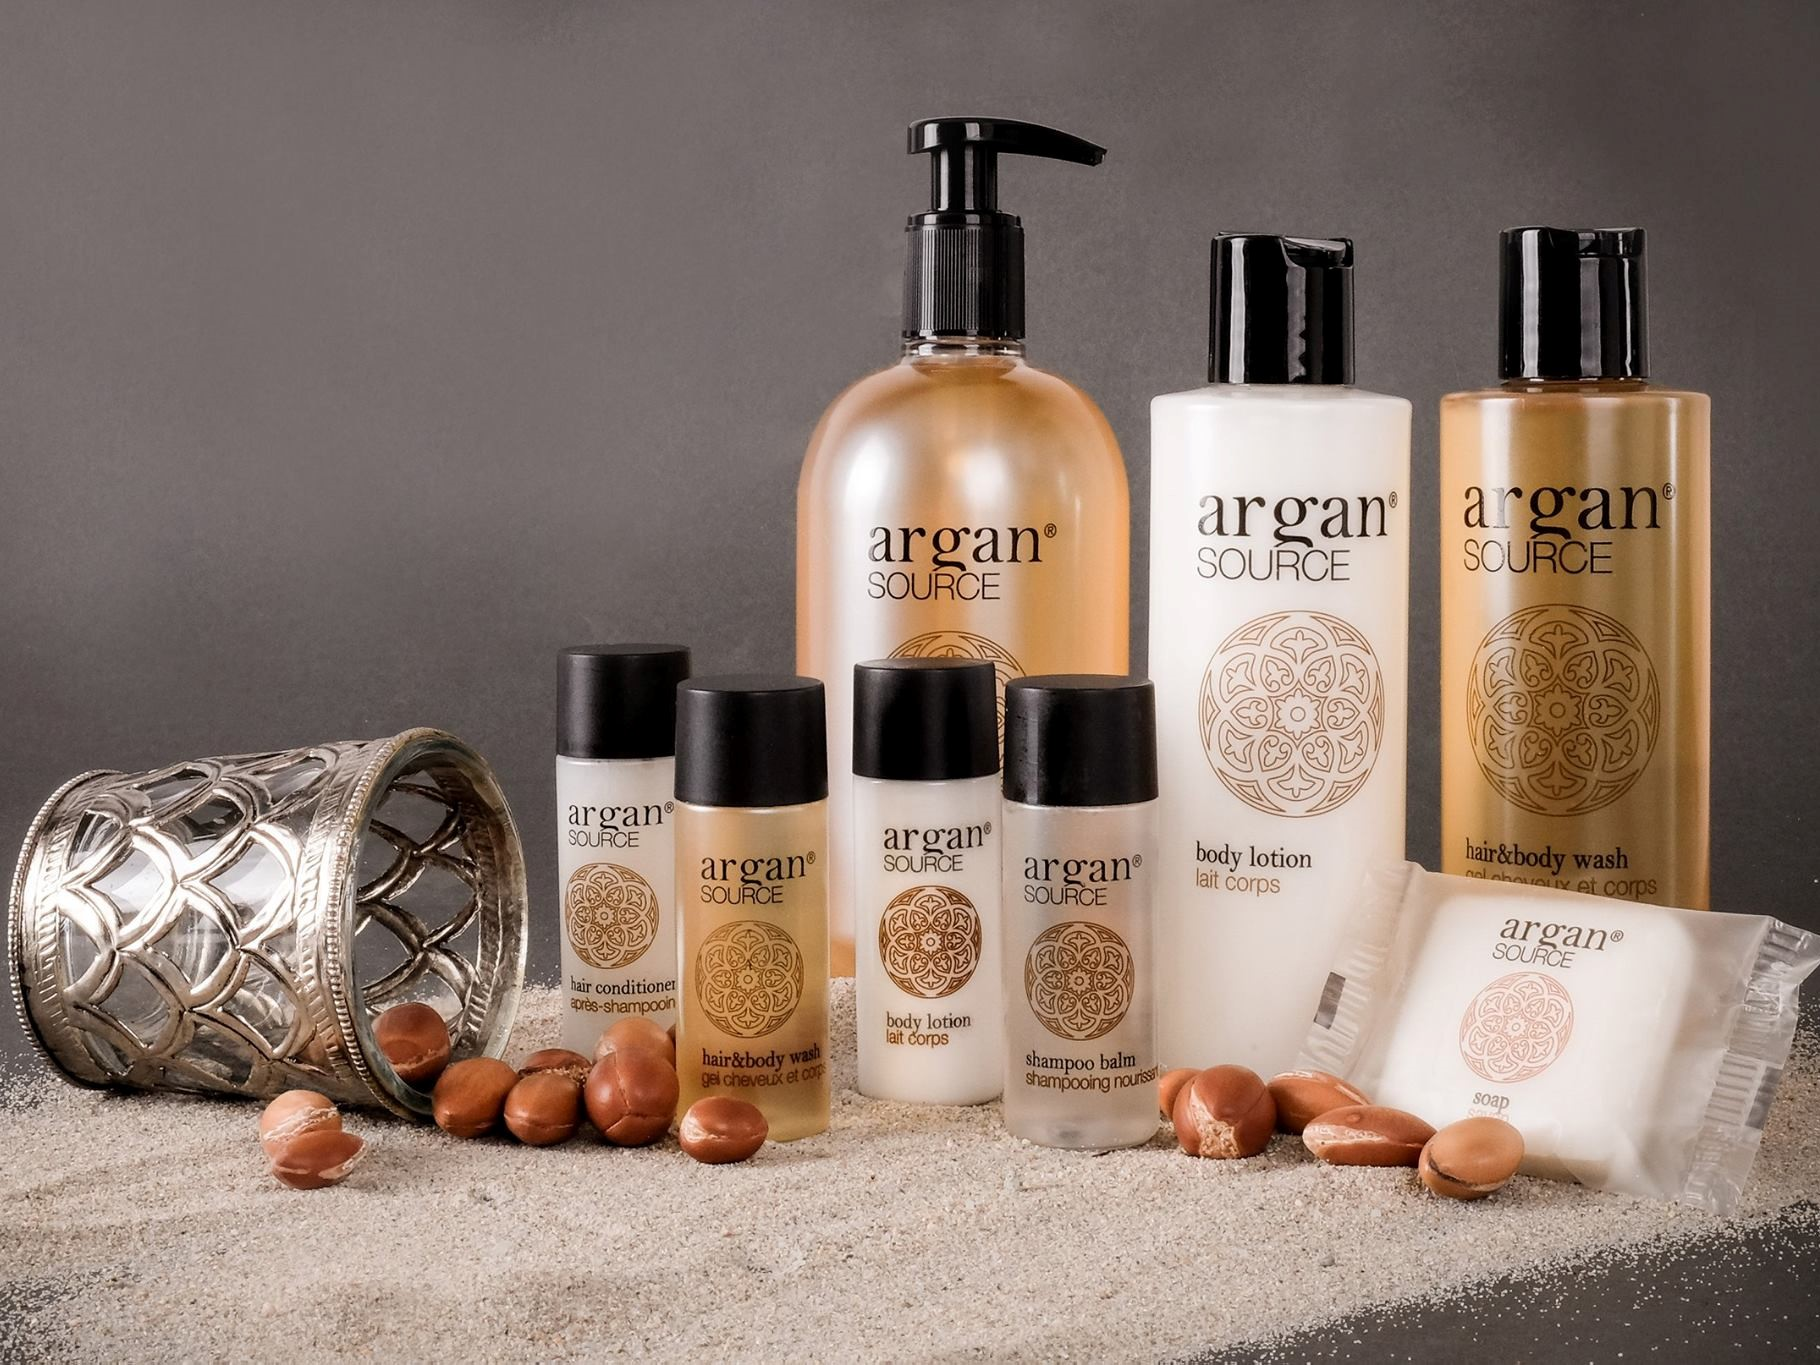 ARGAN SOURCE